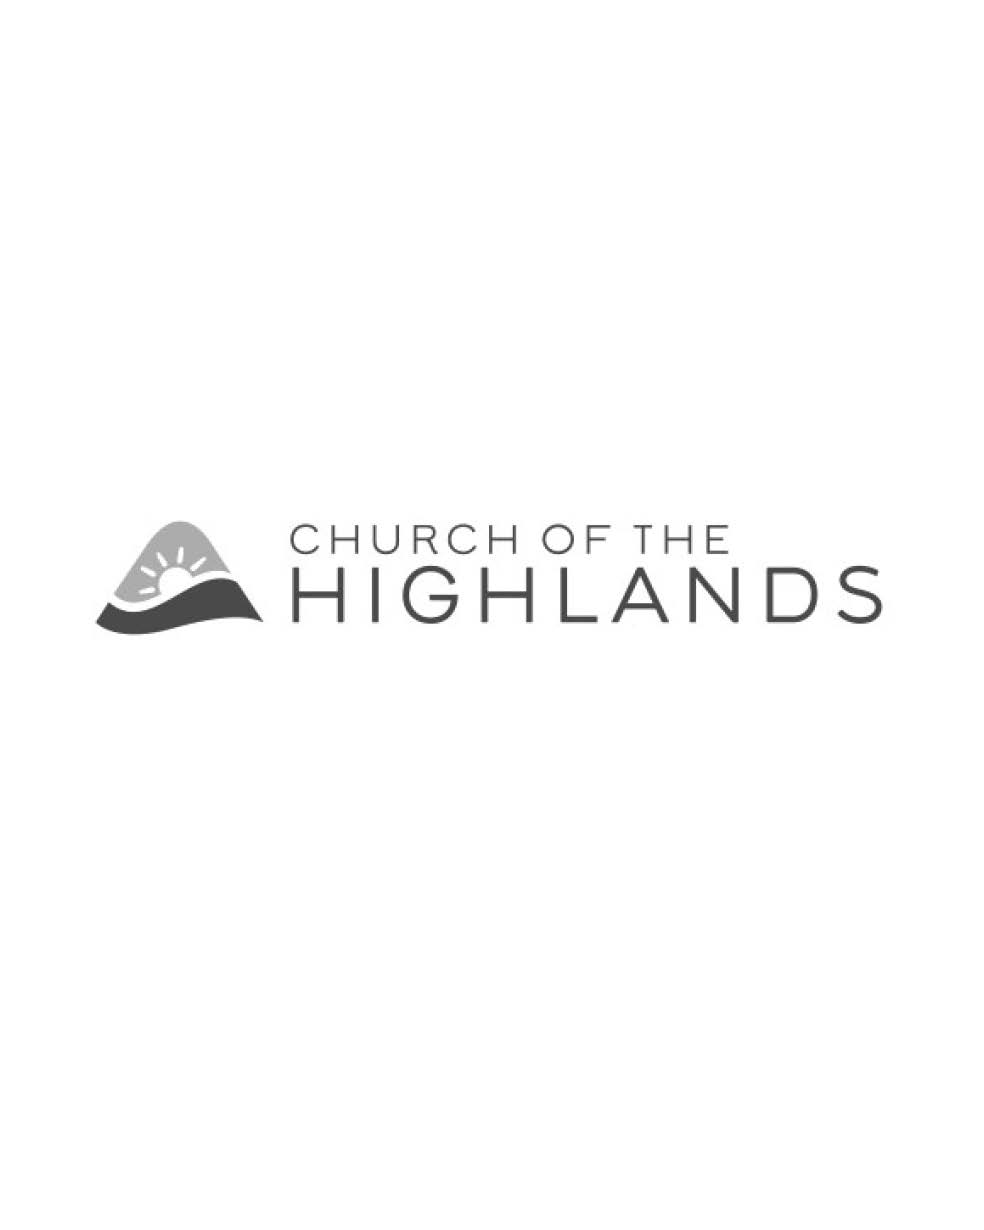 Church of the Highlands Logo .jpg